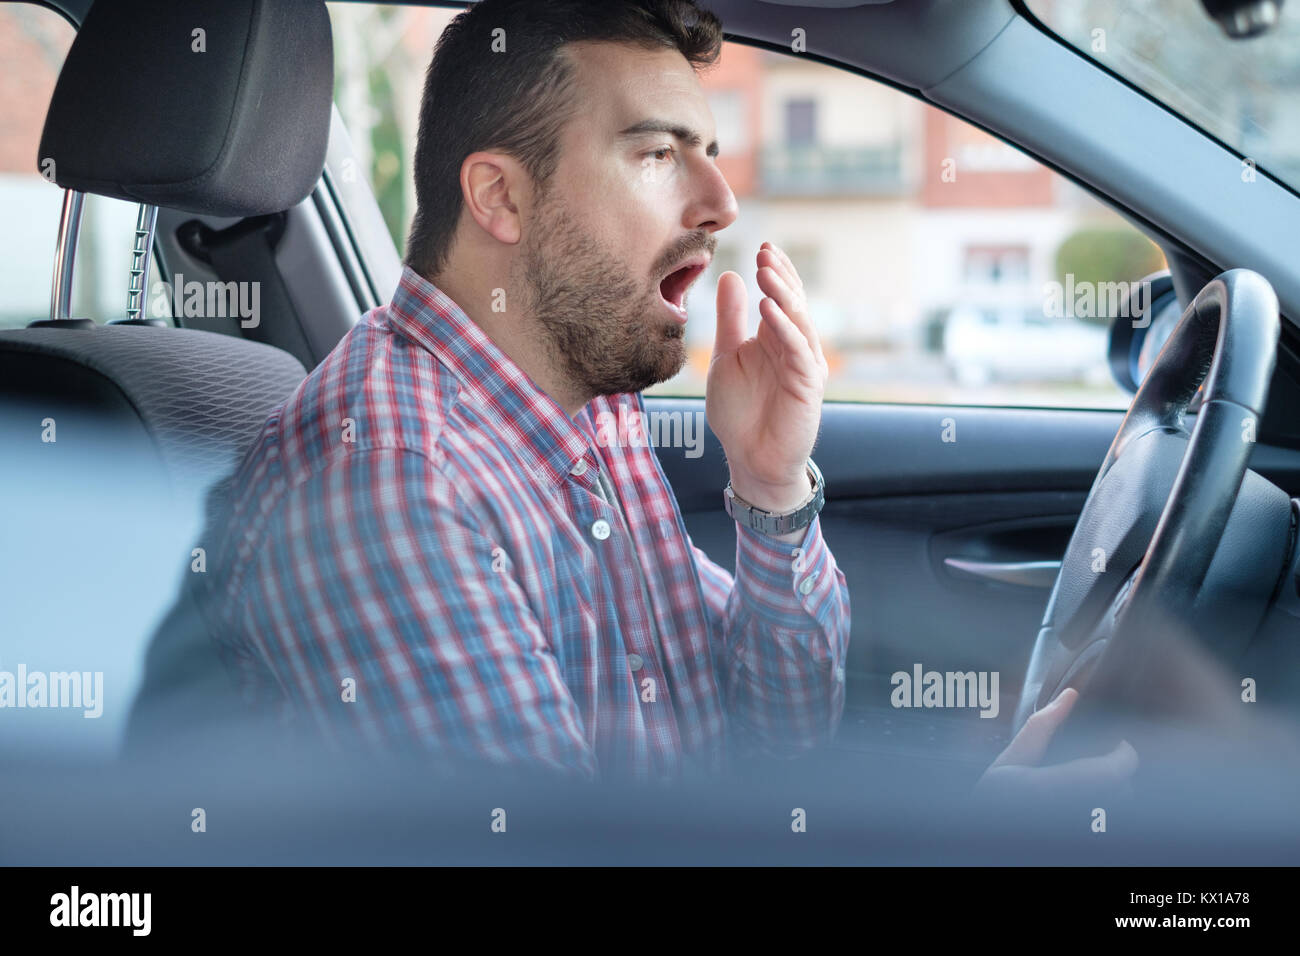 Bored and tired yawning man driving his car need a rest - Stock Image